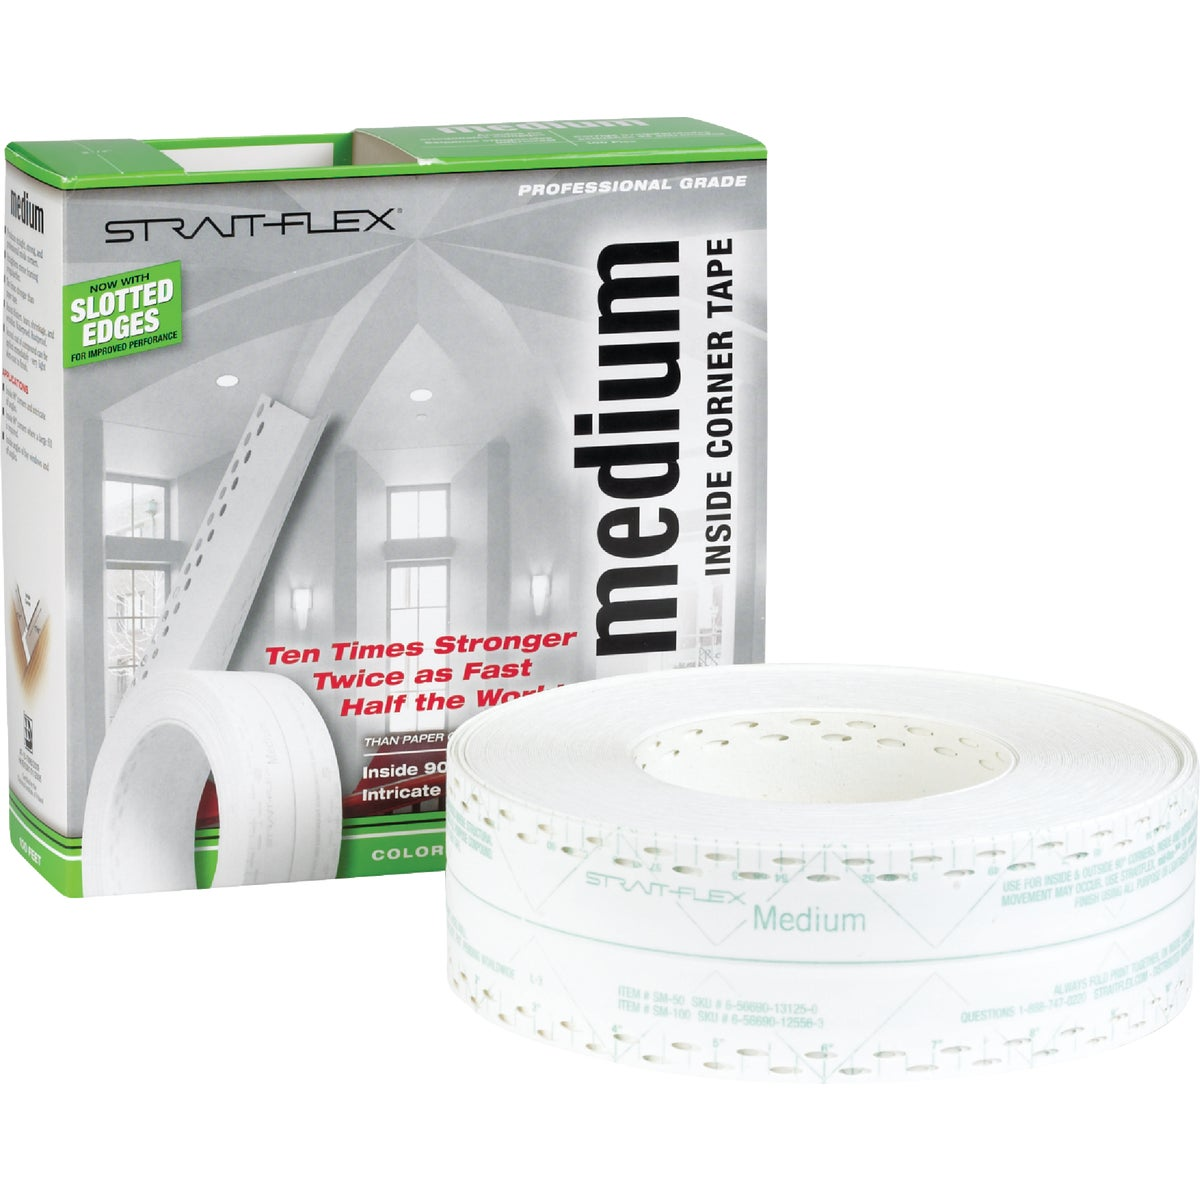 MEDIUM DRYWALL CRNR TAPE